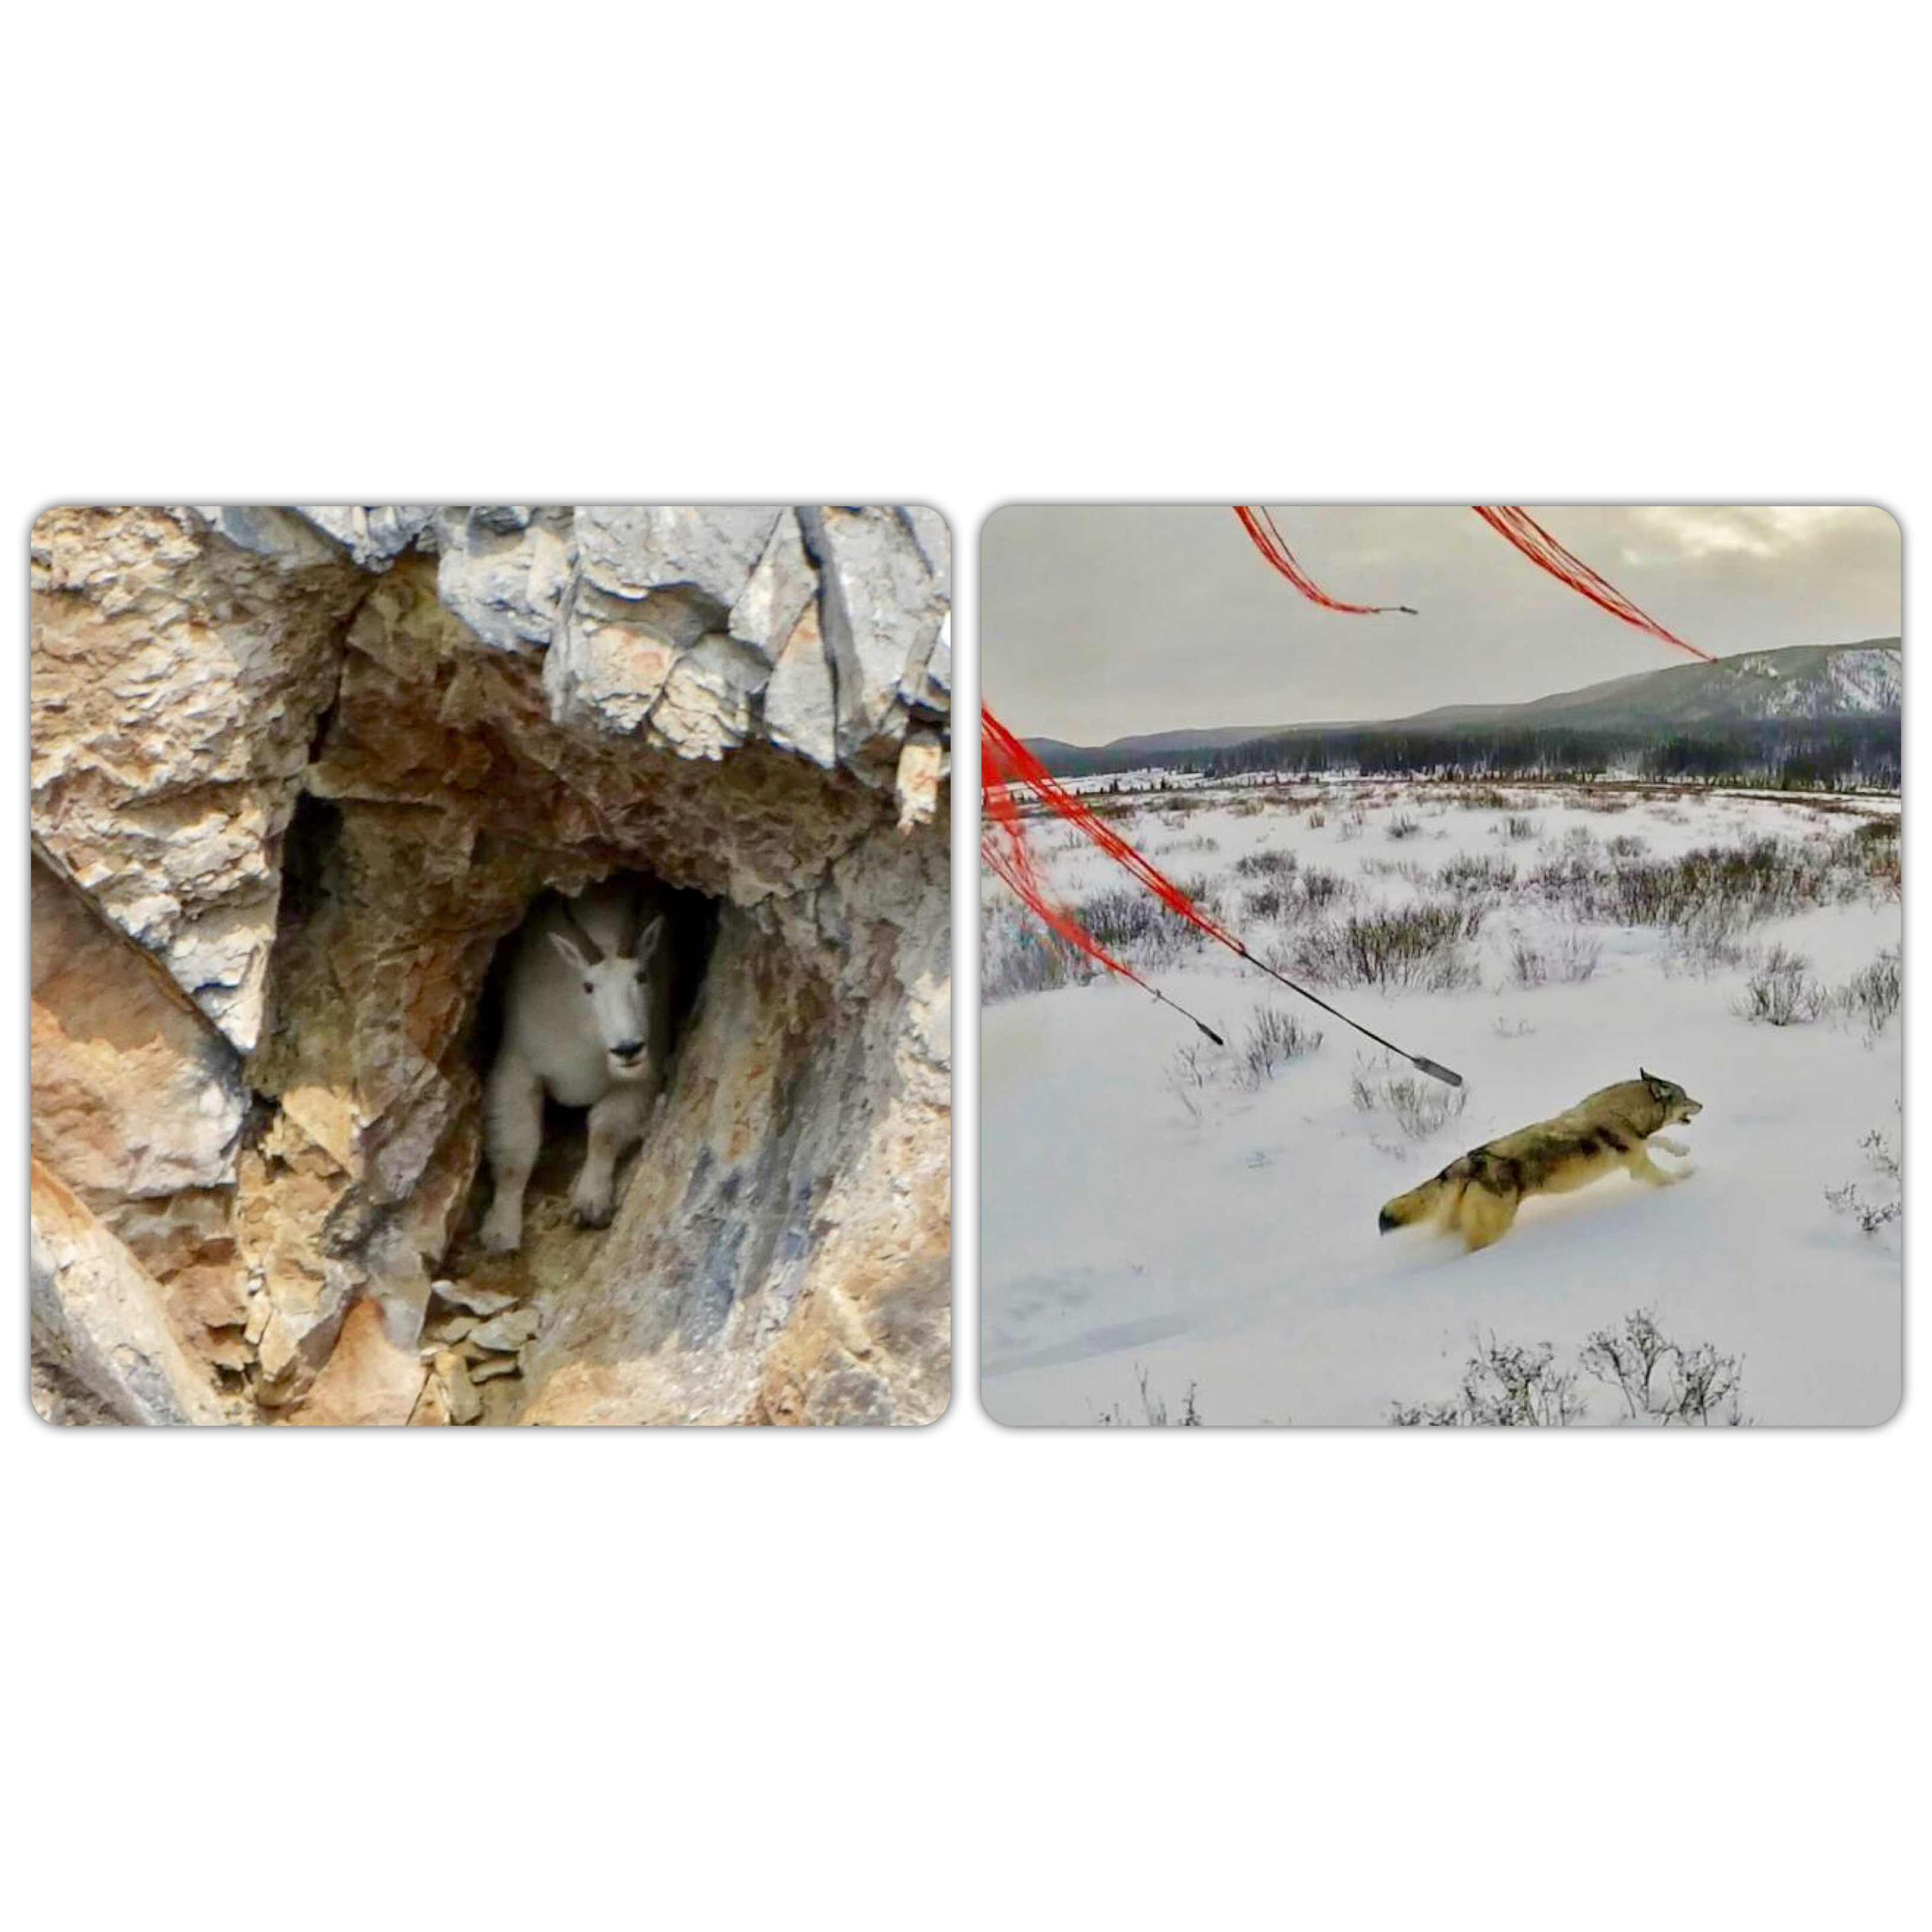 Collage Photo of a Mountain Goat in a Cave and of a Wolf About to Be Captured by a Net Gun